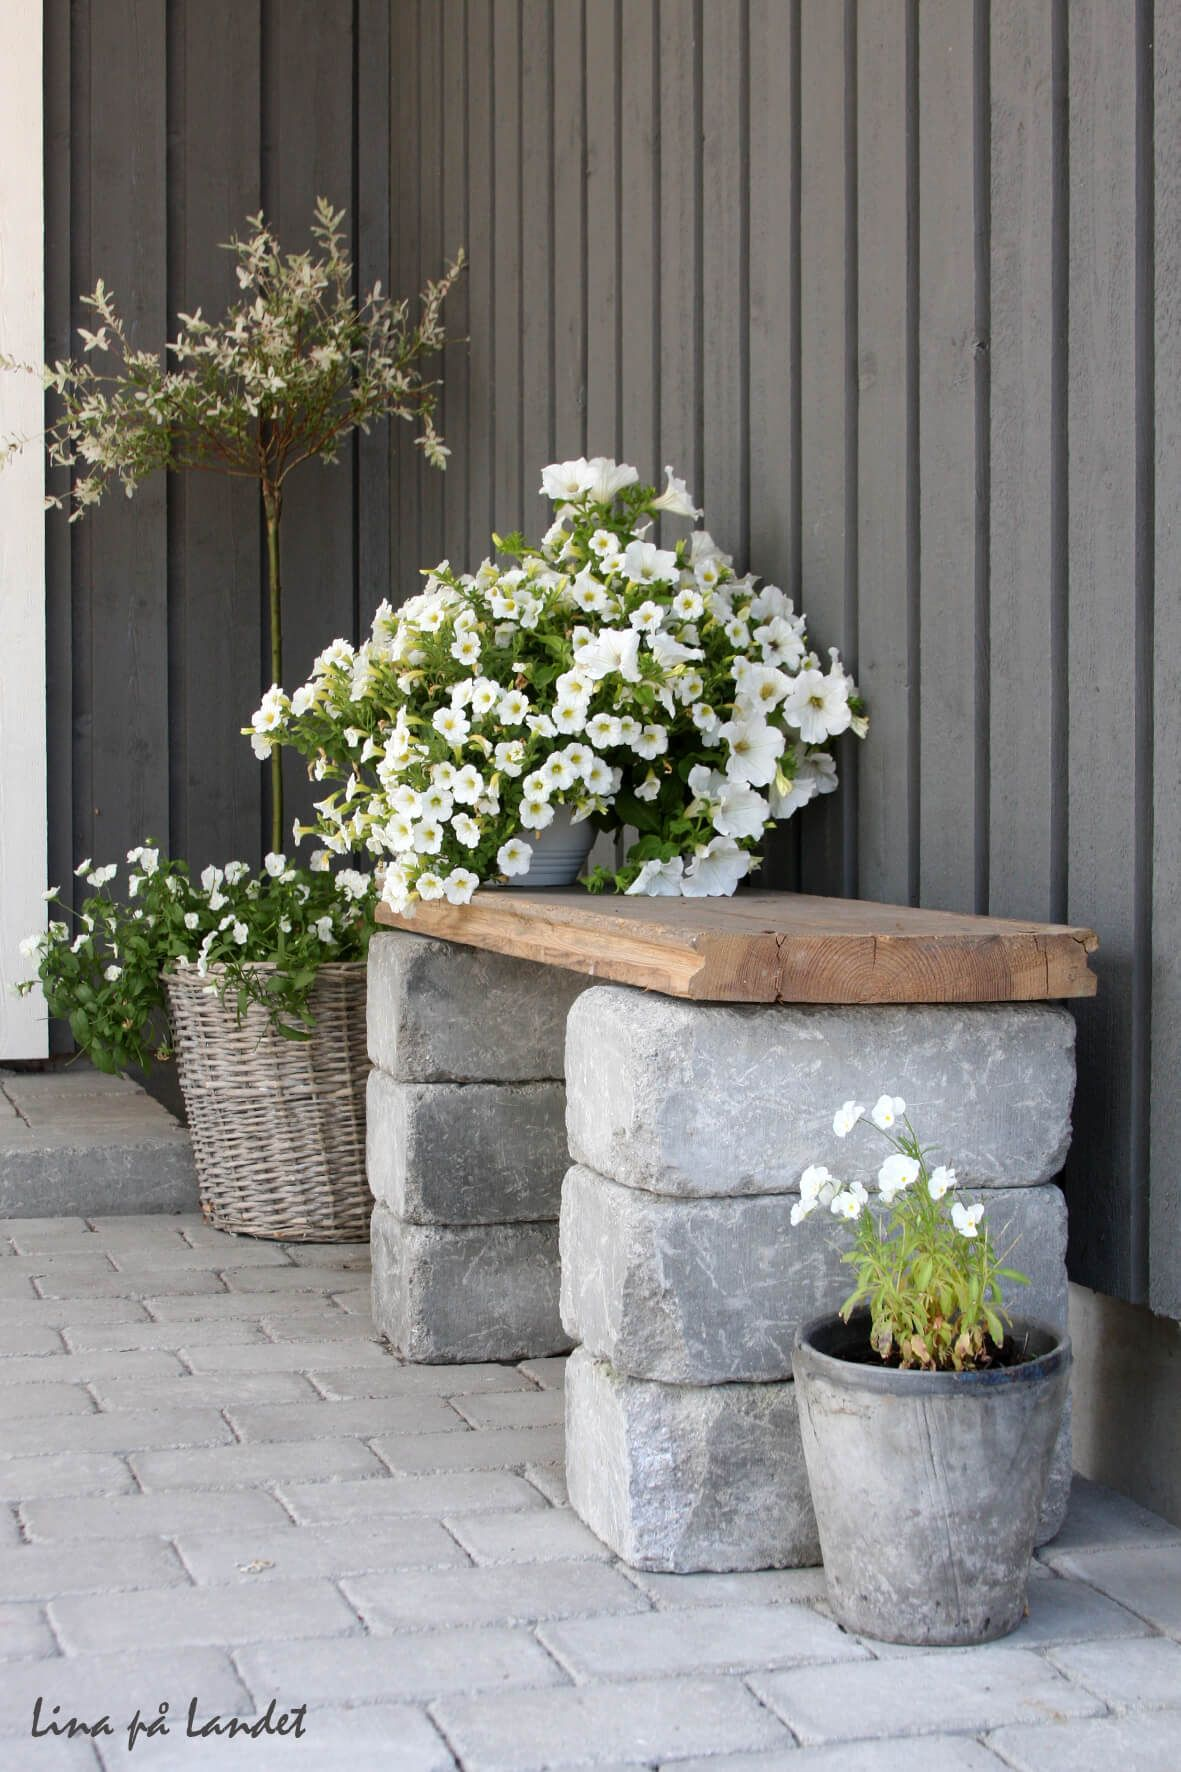 Diy Backyard Projects 42 Summery Diy Backyard Projects For Functional Outdoor Beauty Stone